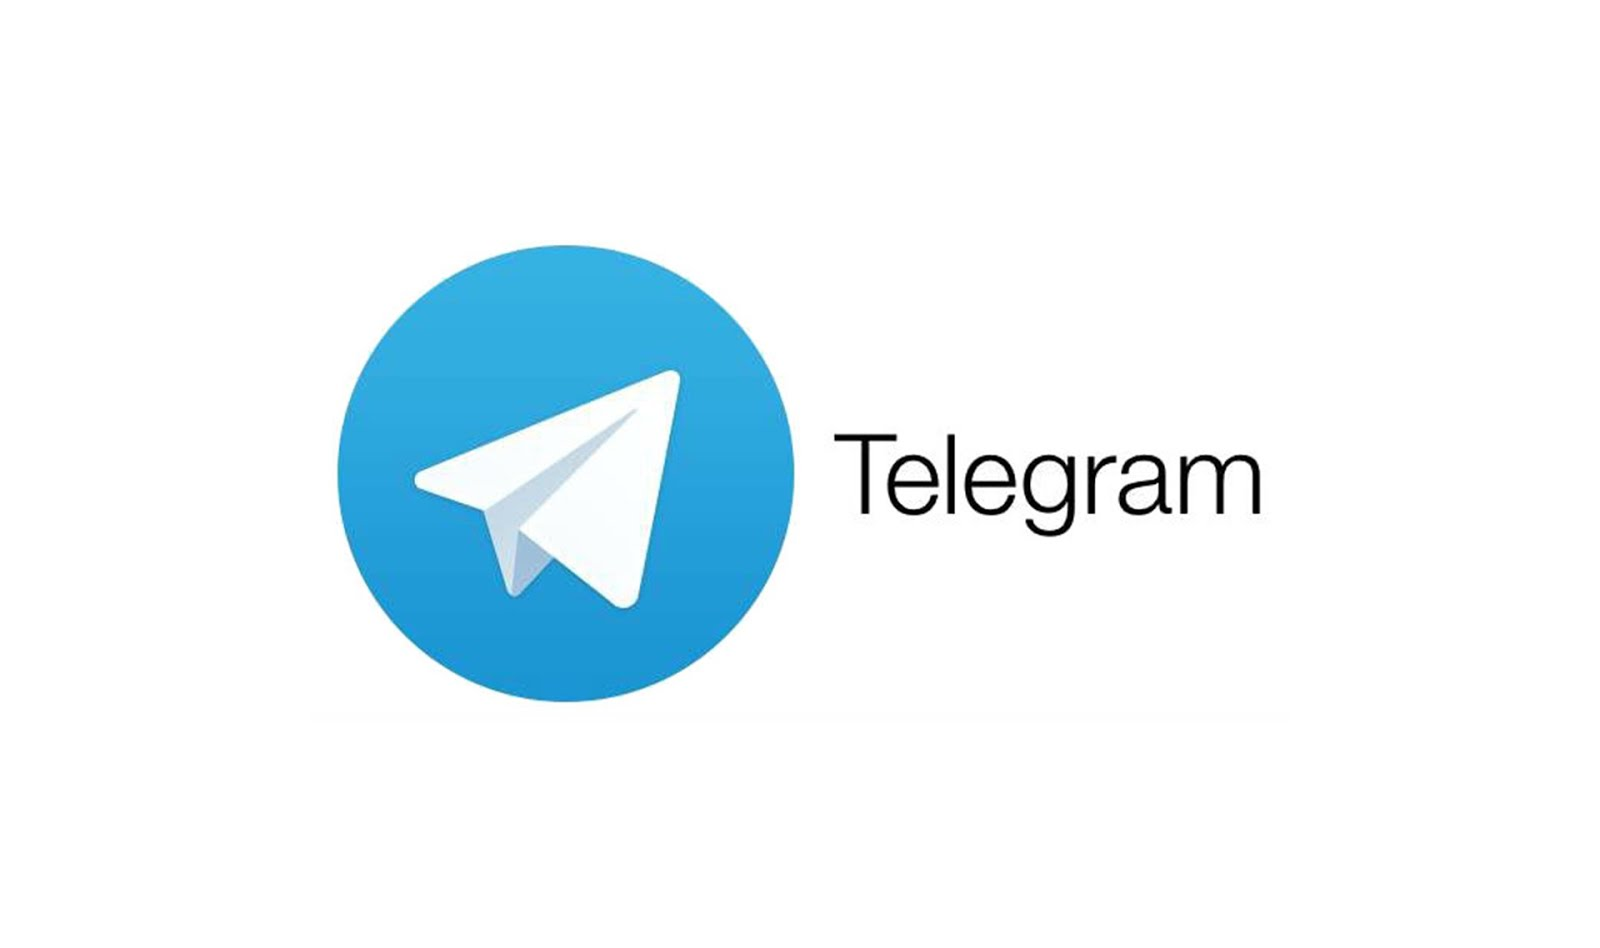 TELEGRAM CHANEL